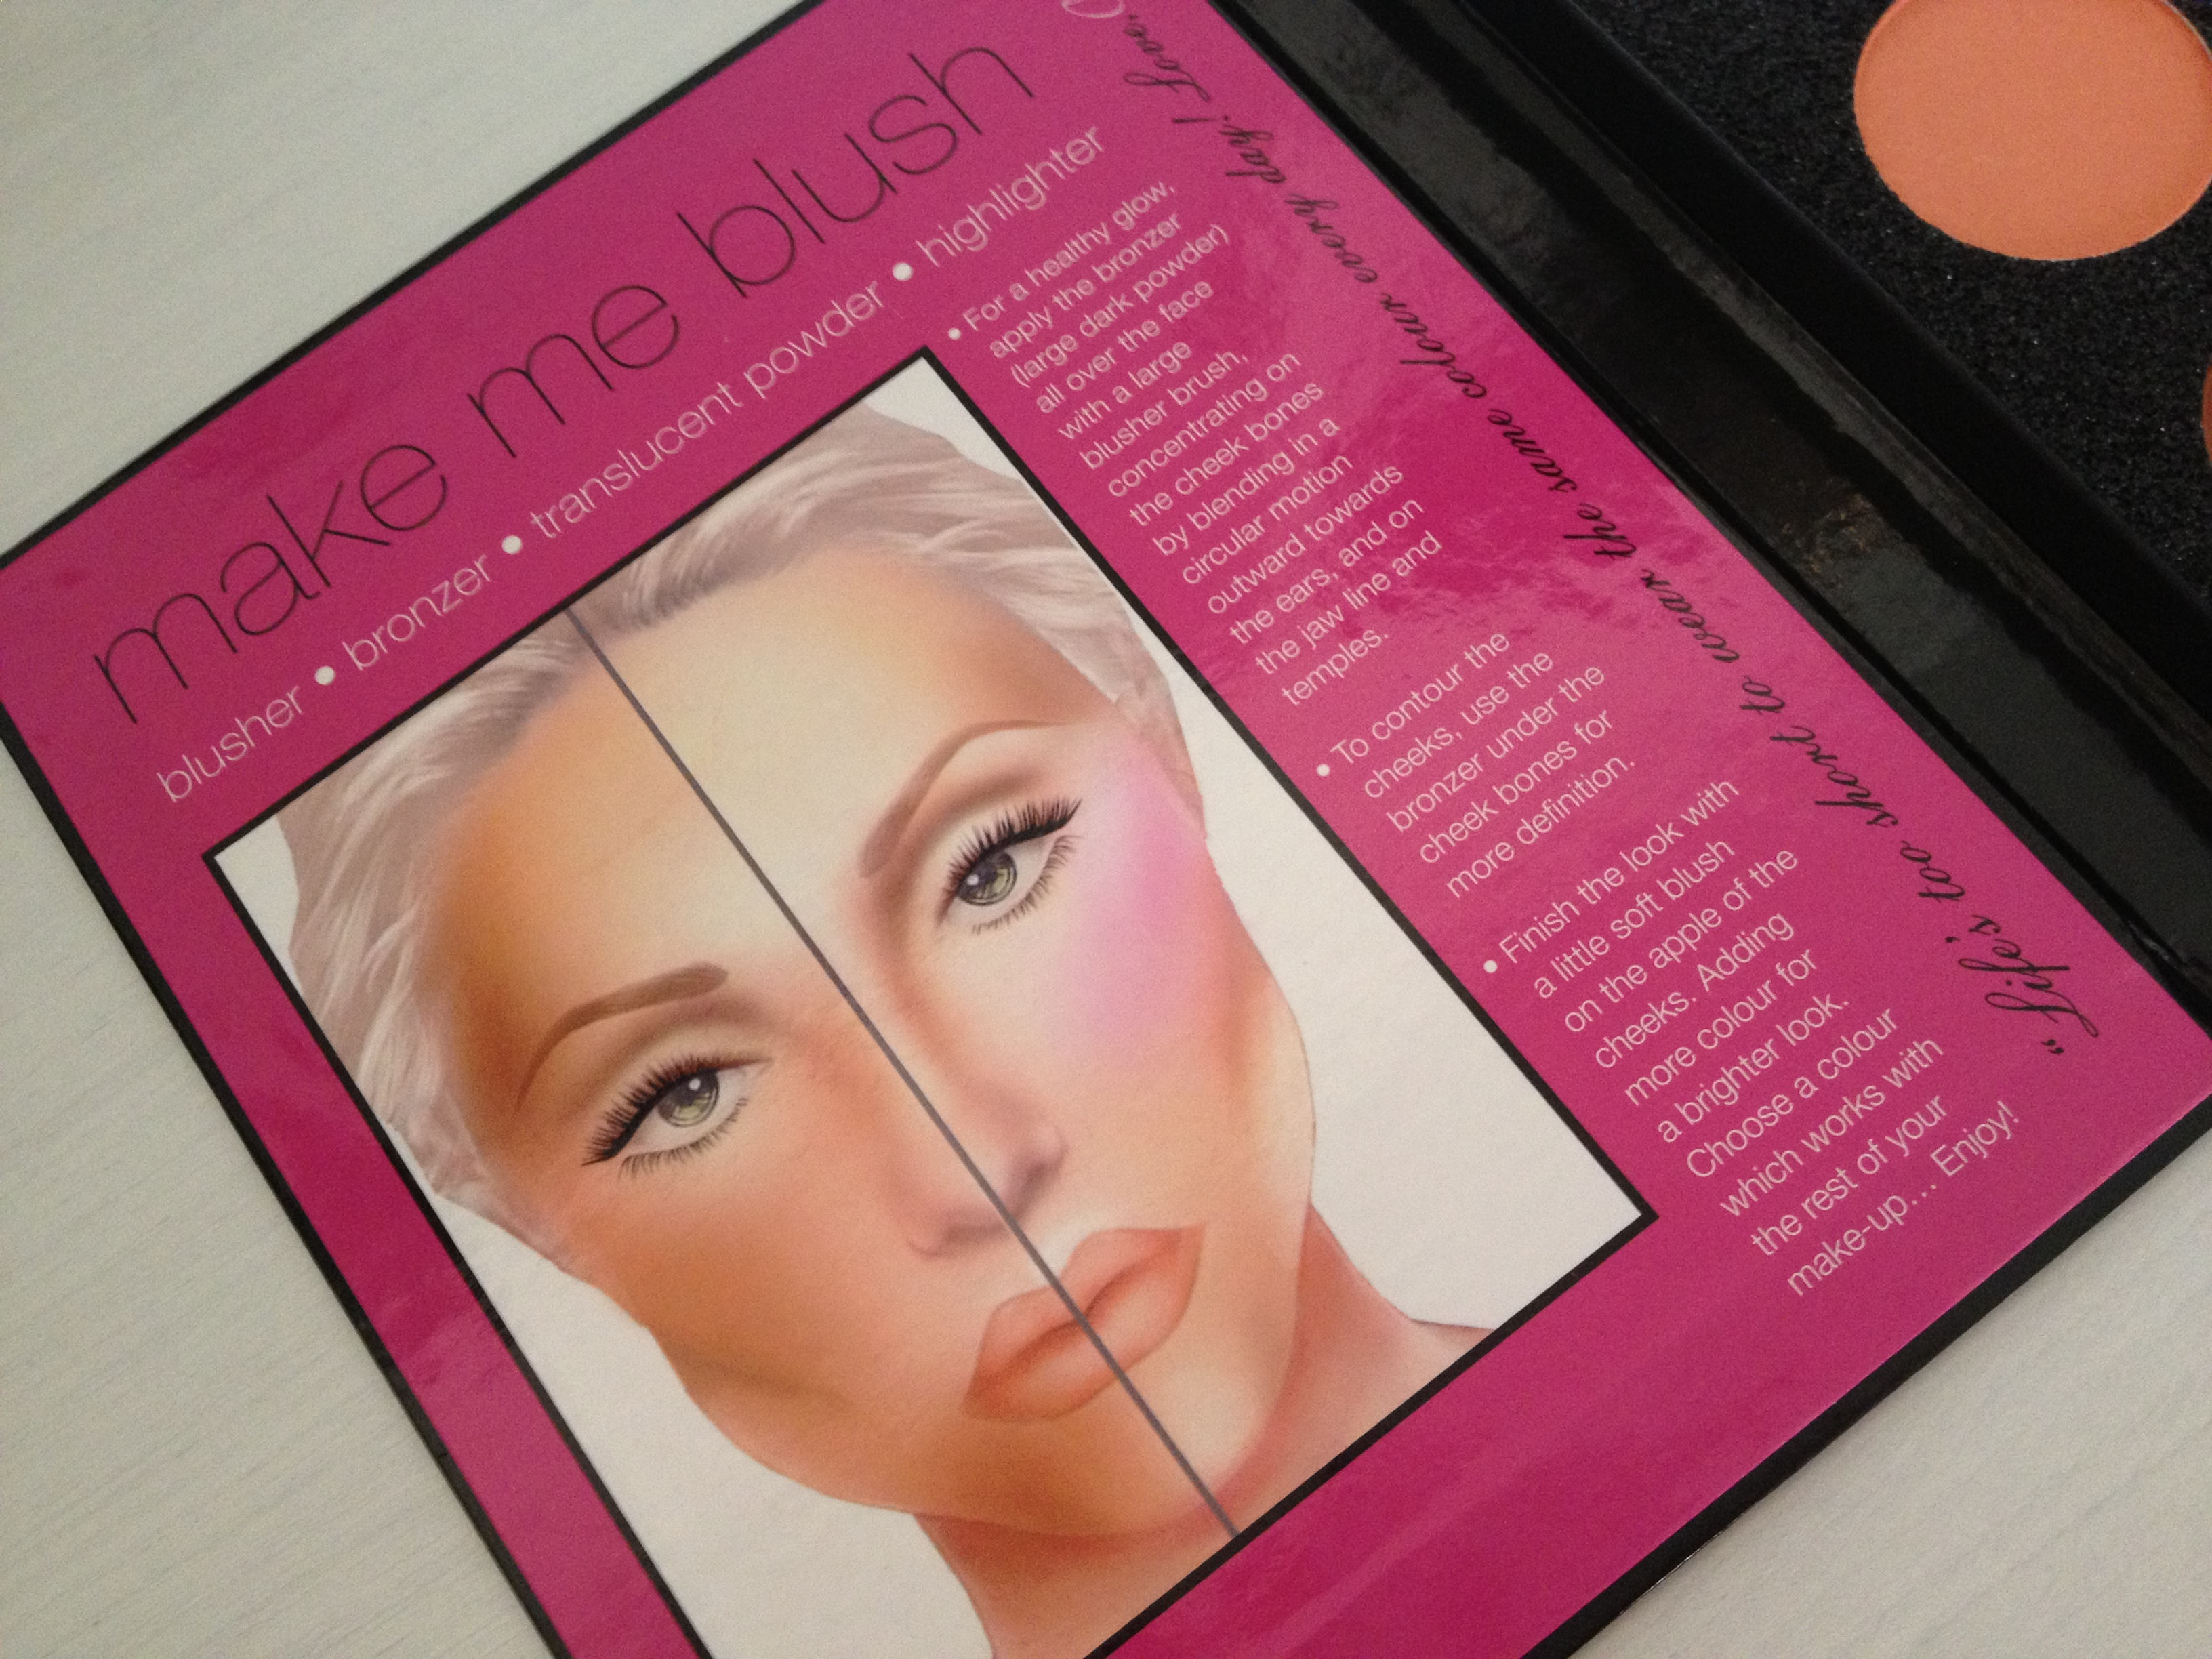 Carolyn_K_London_Make_Me_Blush_Beauty_Book